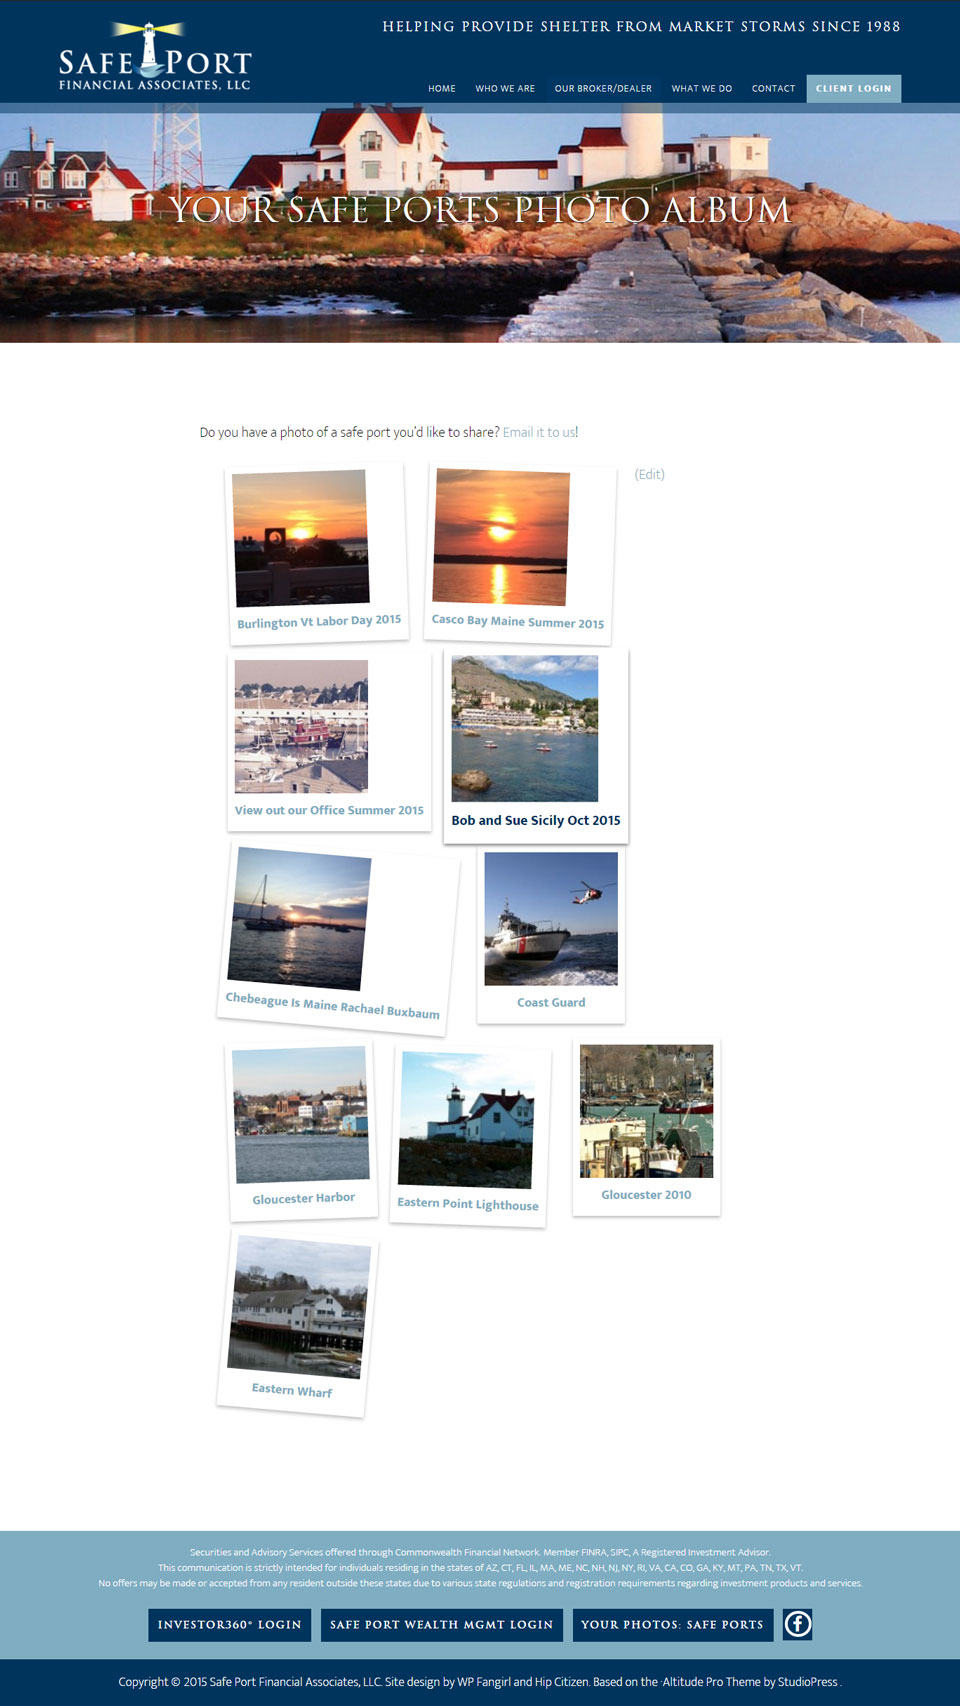 Your Safe Ports photo album with Polaroid effect